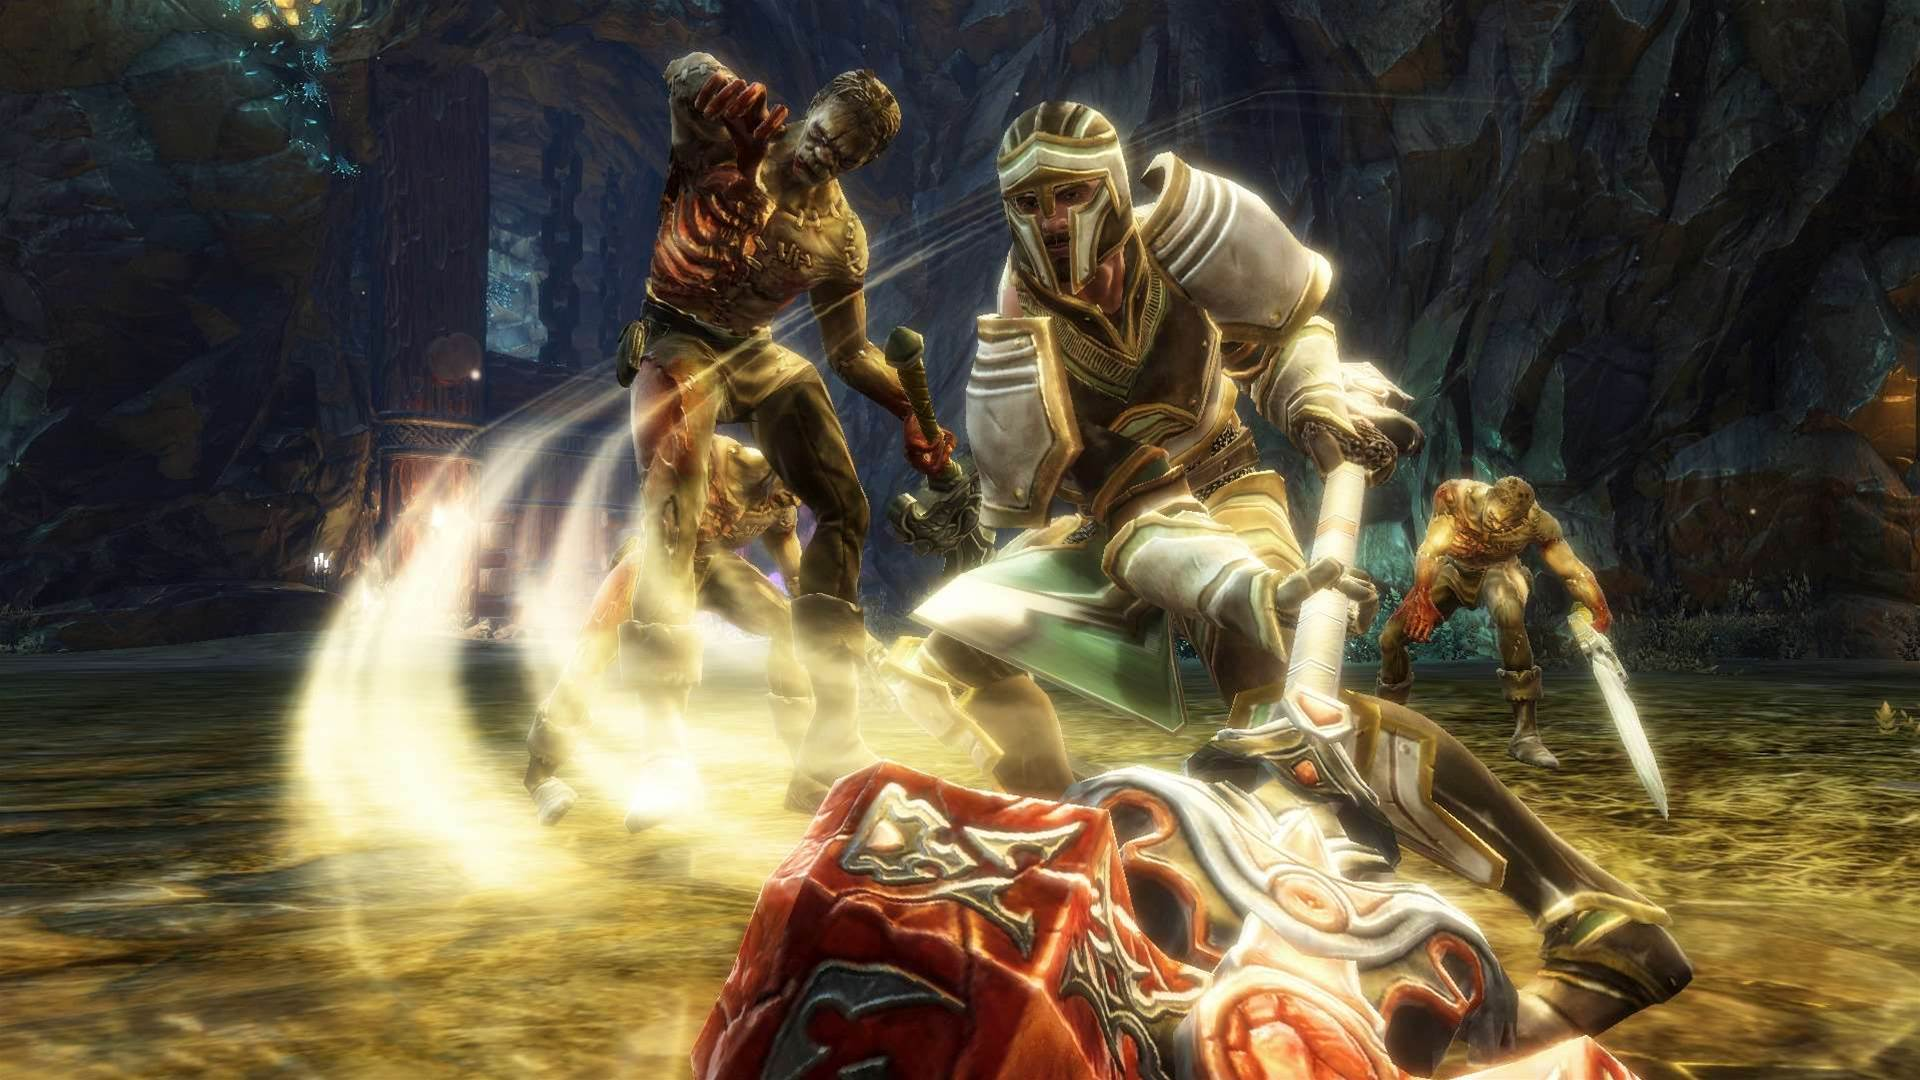 Reckoning: Kingdoms of Amalur - fun, but...